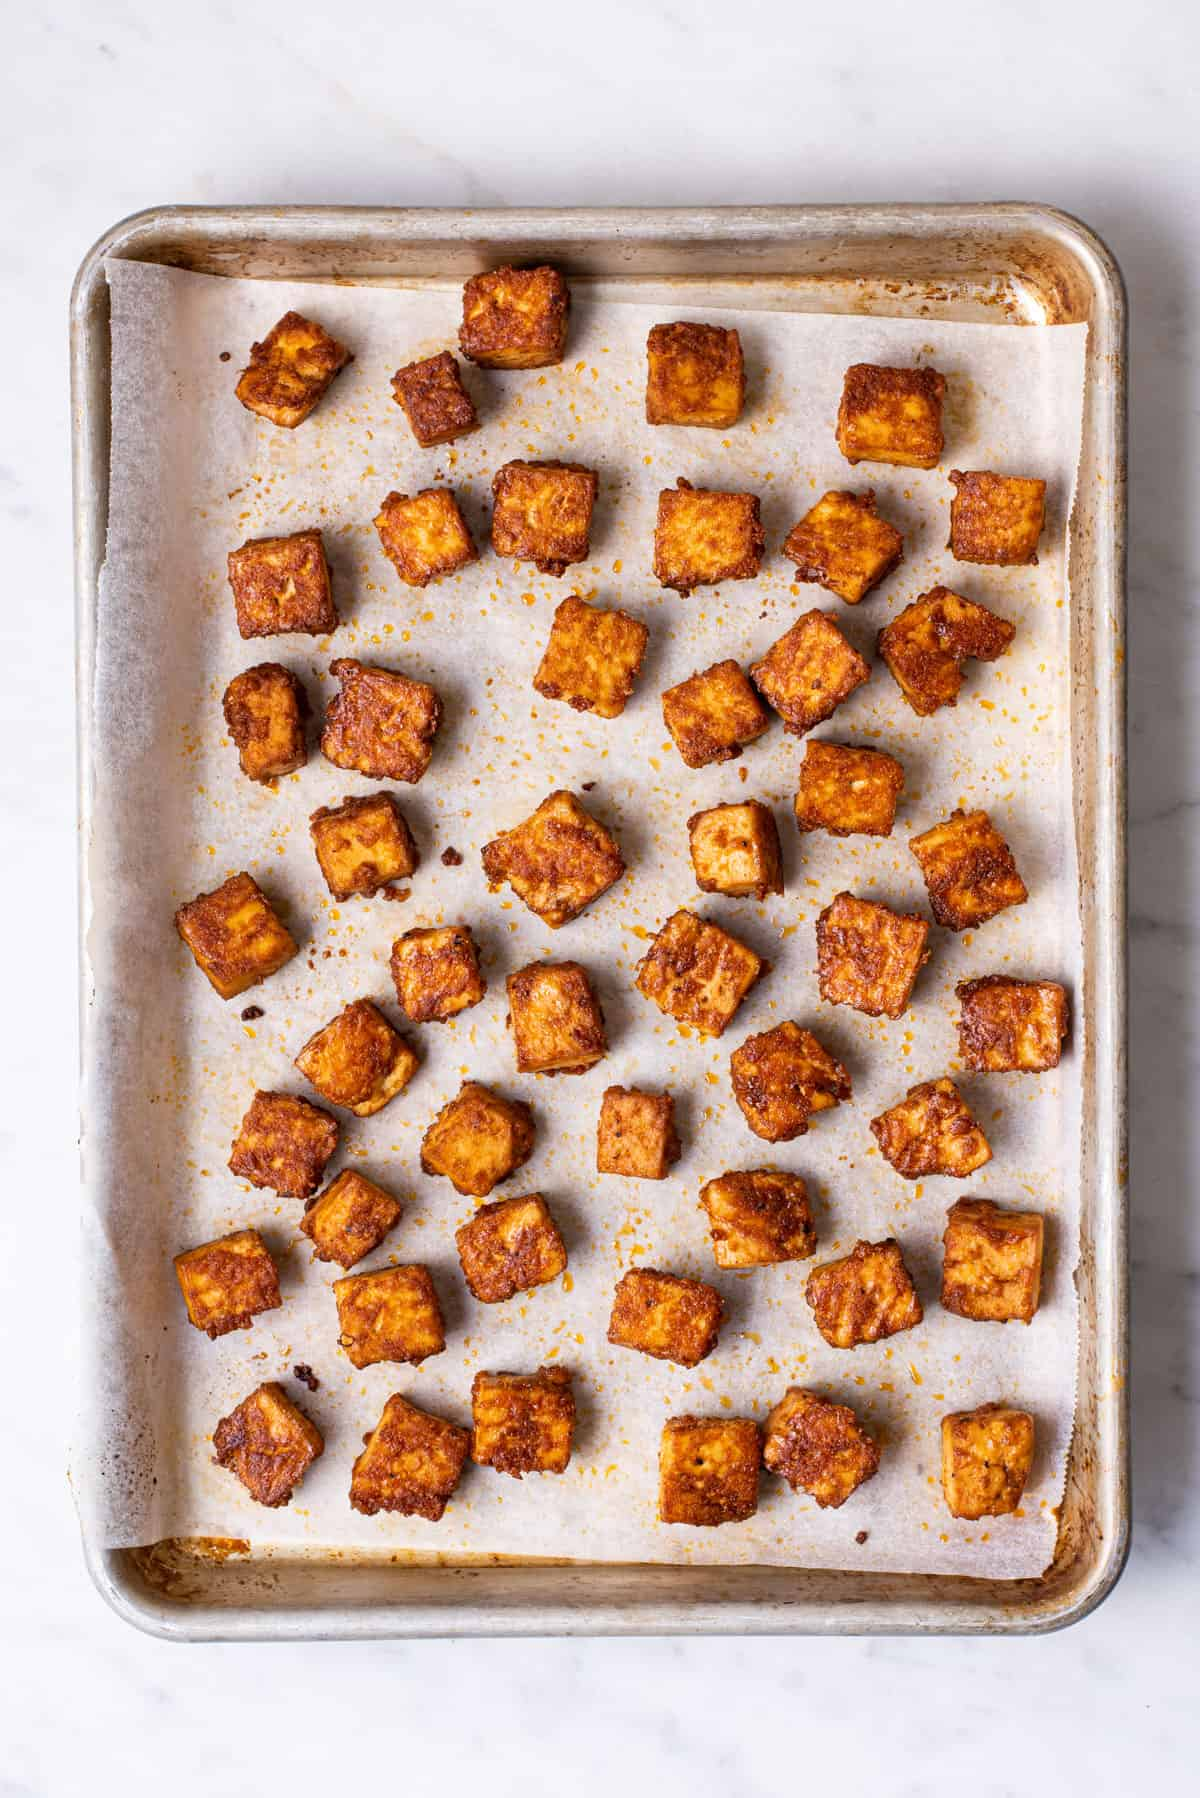 Cubes of baked tofu on a parchment-covered baking sheet